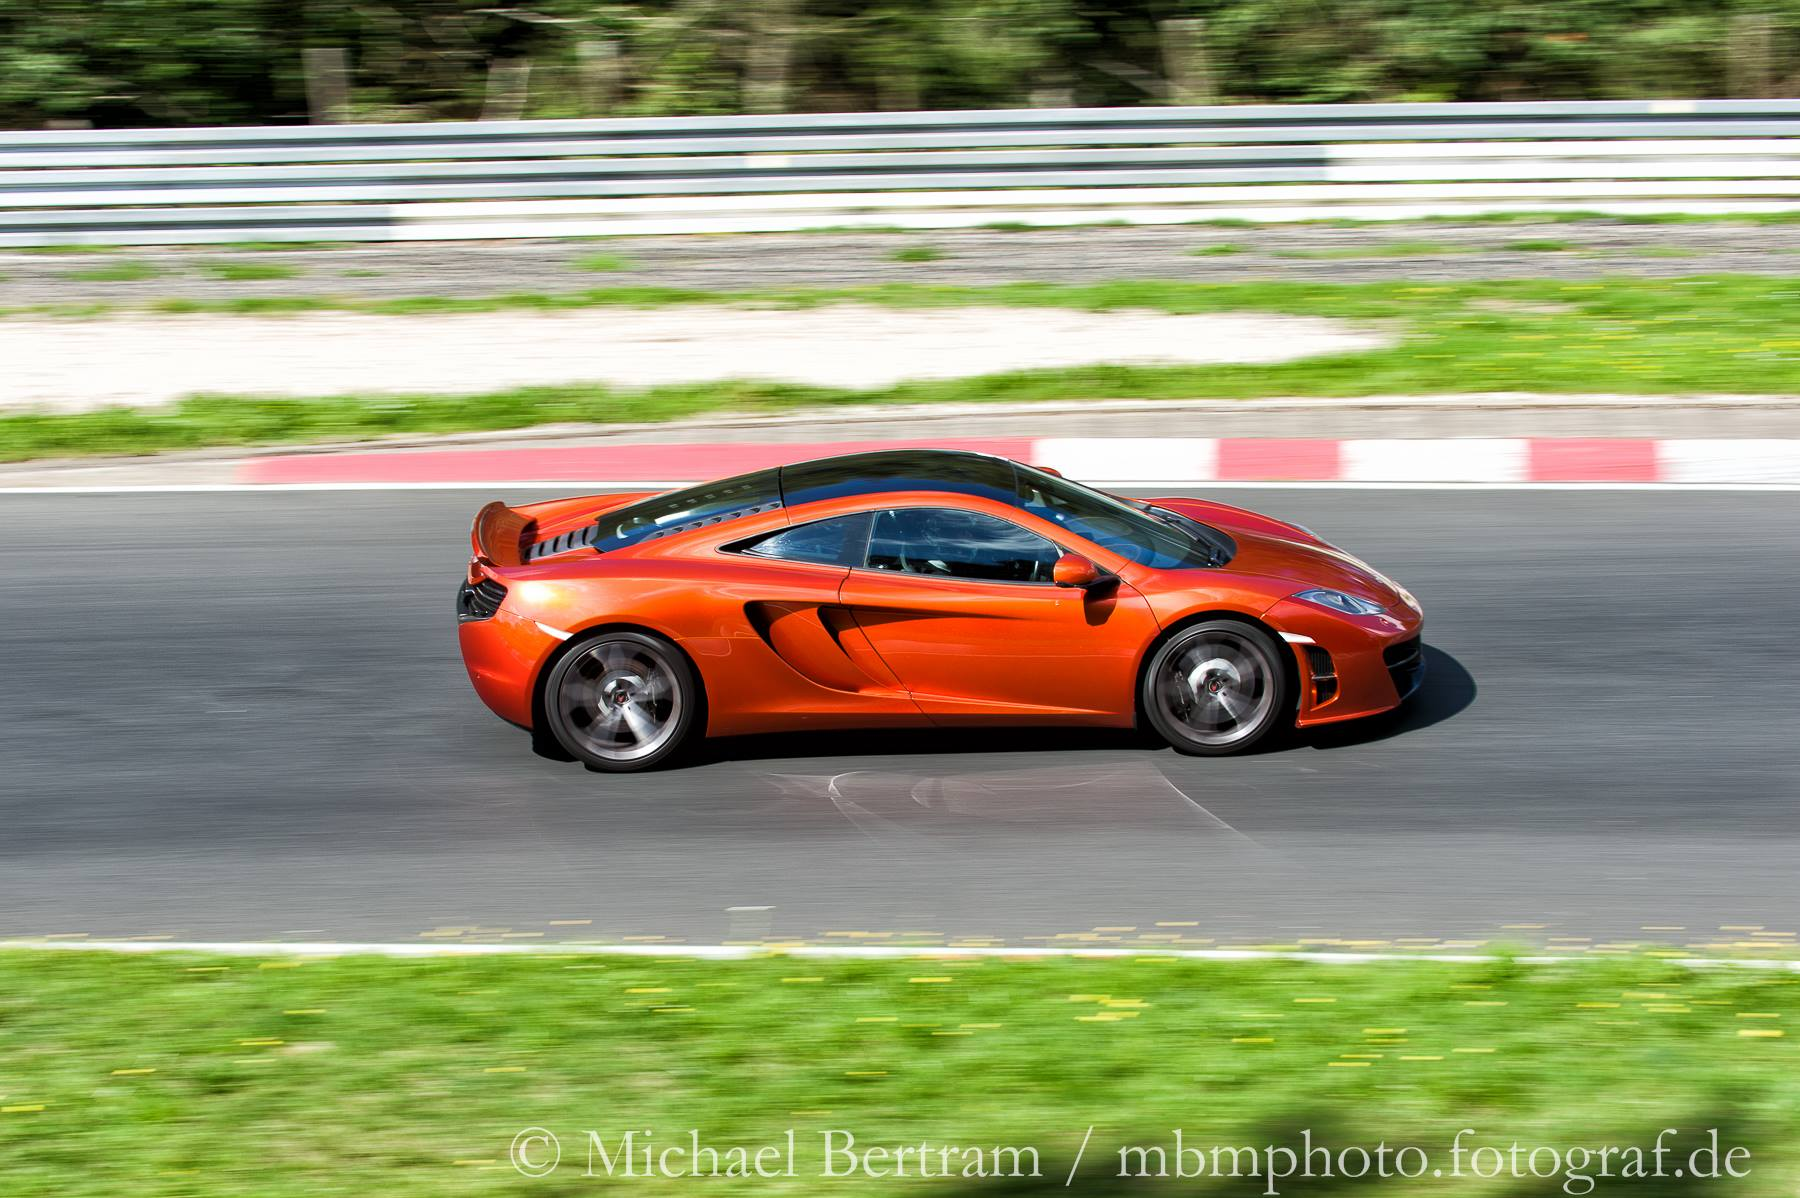 Pictures Nordschleife 10.09.2015